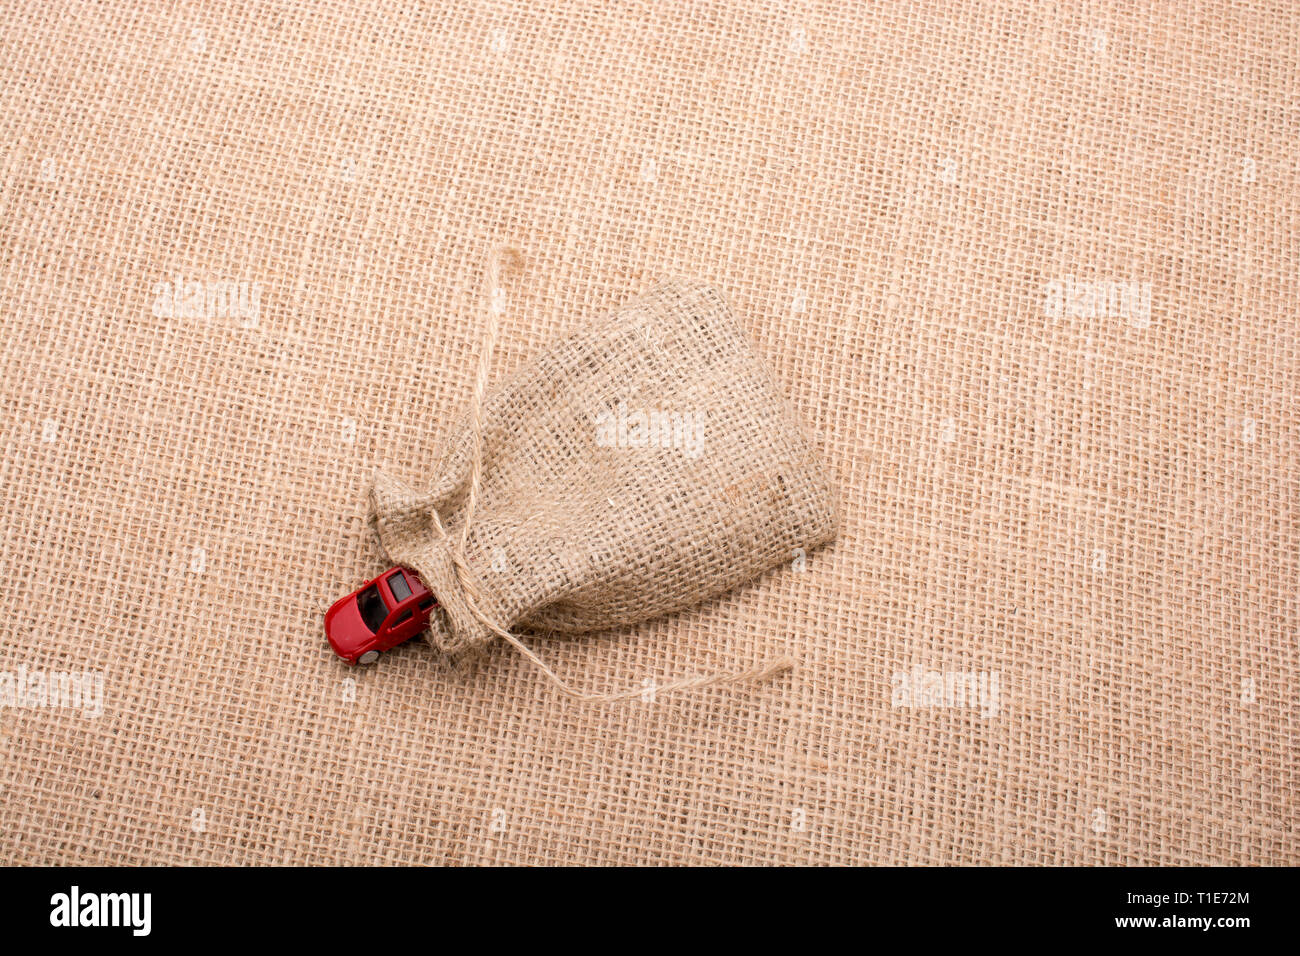 Red toy car coming out of a linen sack on a linen canvas - Stock Image